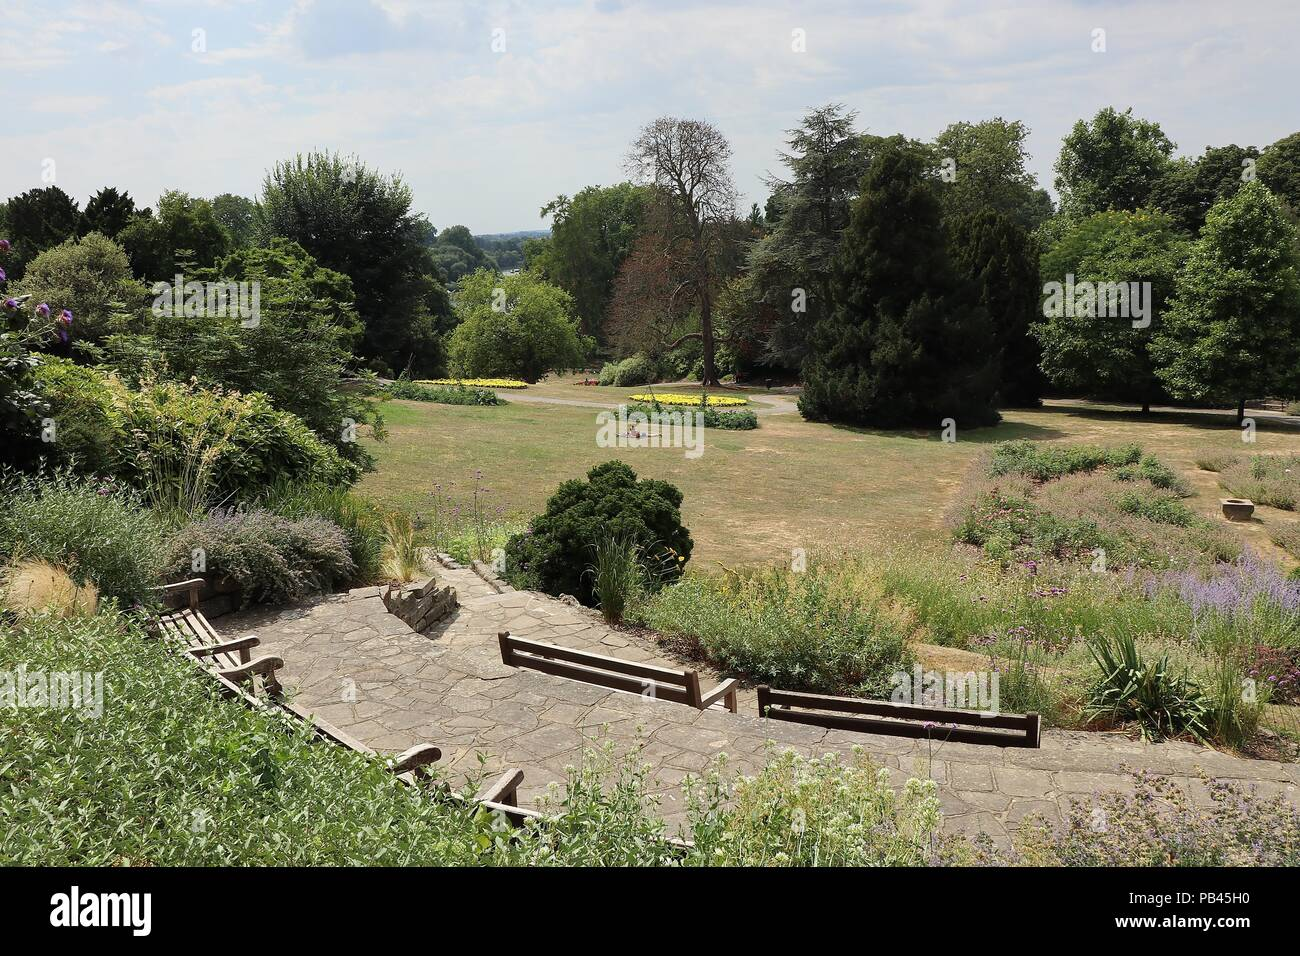 HOTTEST DAY IN UK 26 July 2018 - Stock Image